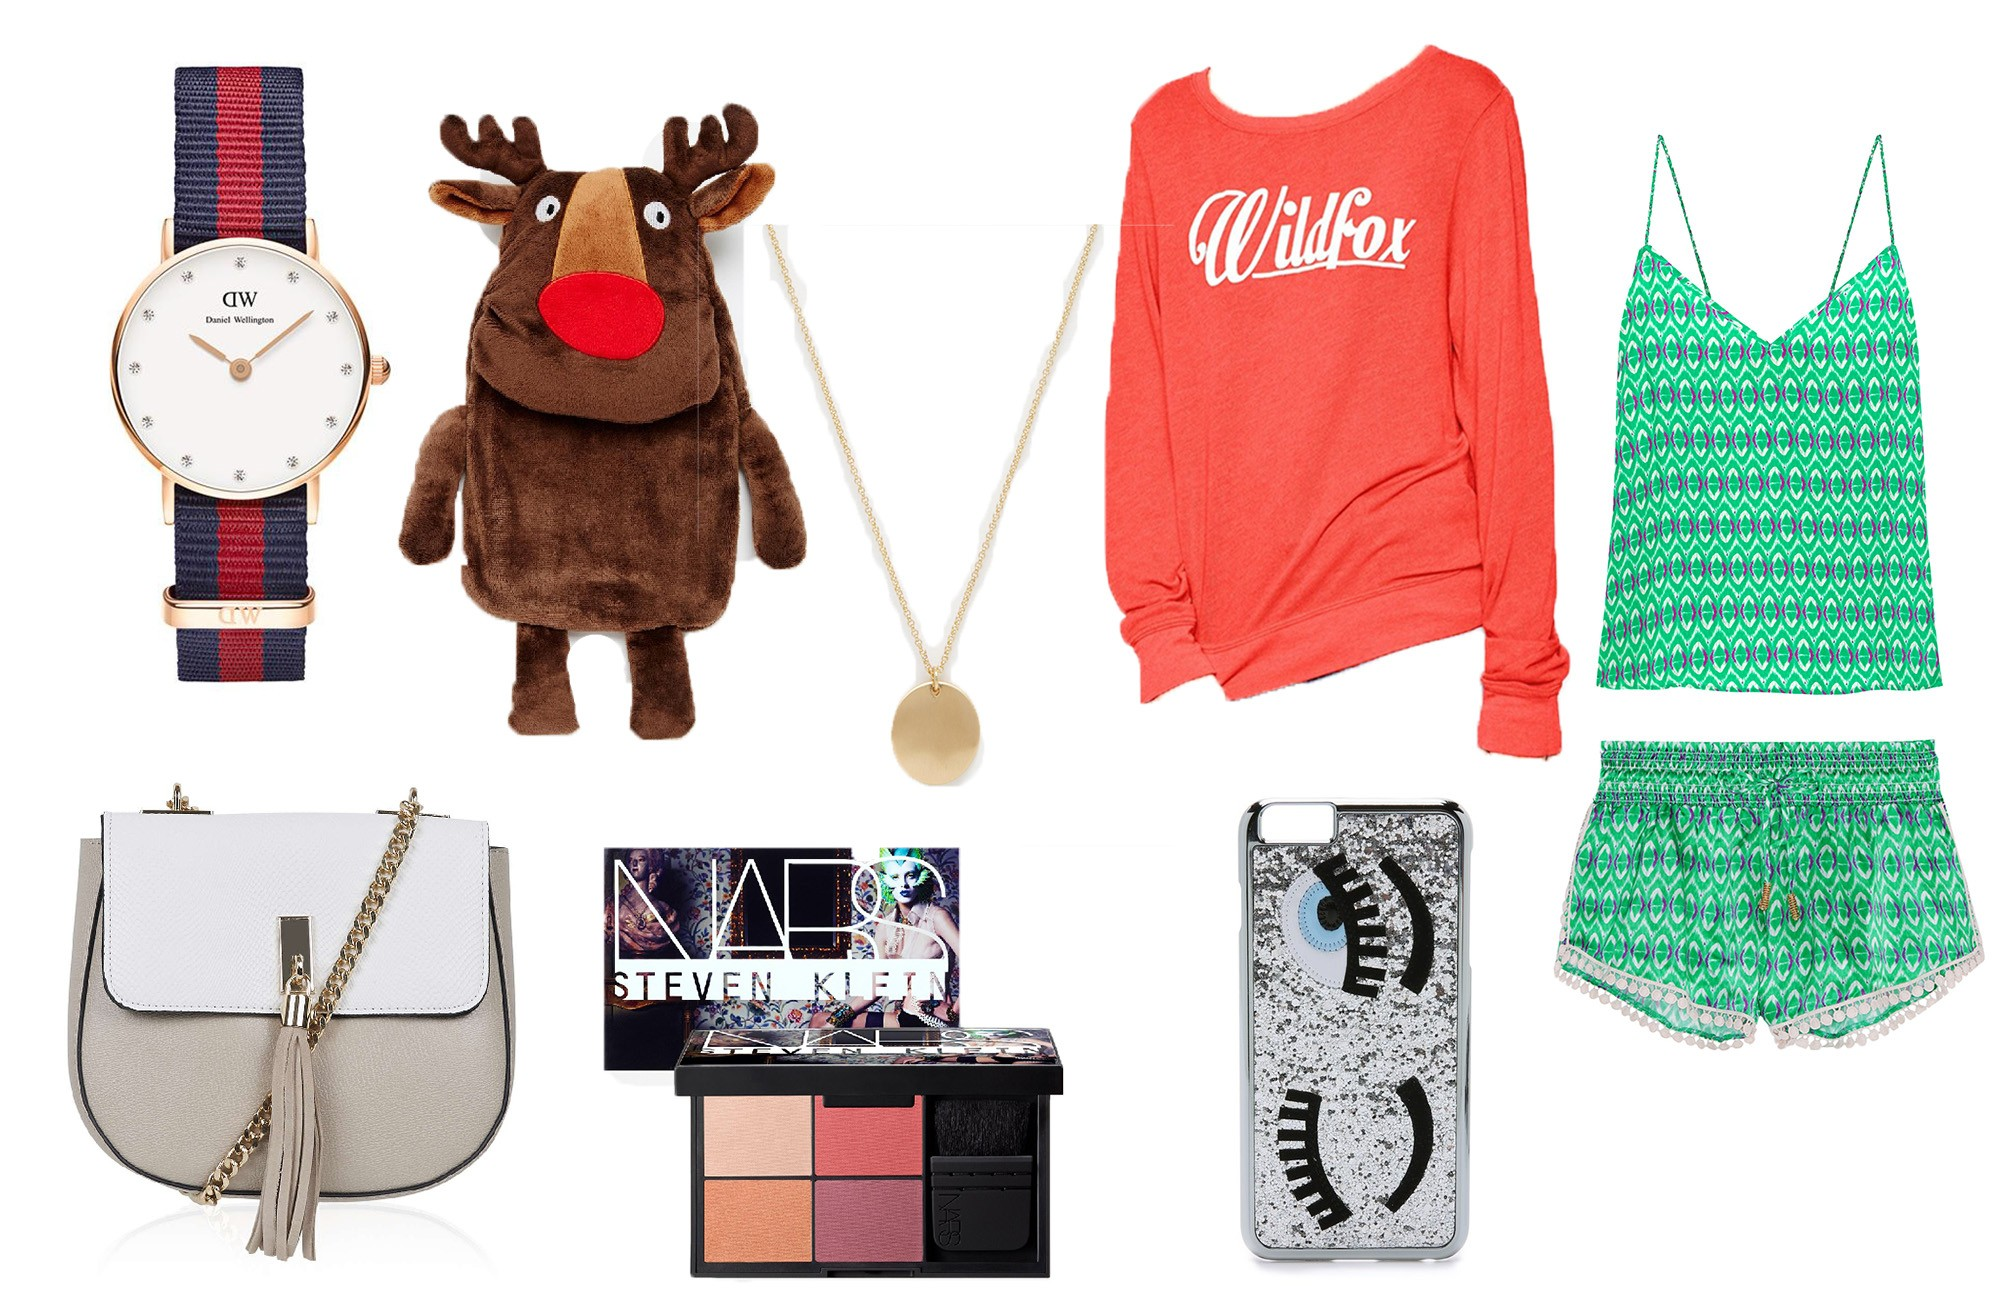 Last Minute Christmas Gift Guide - my list